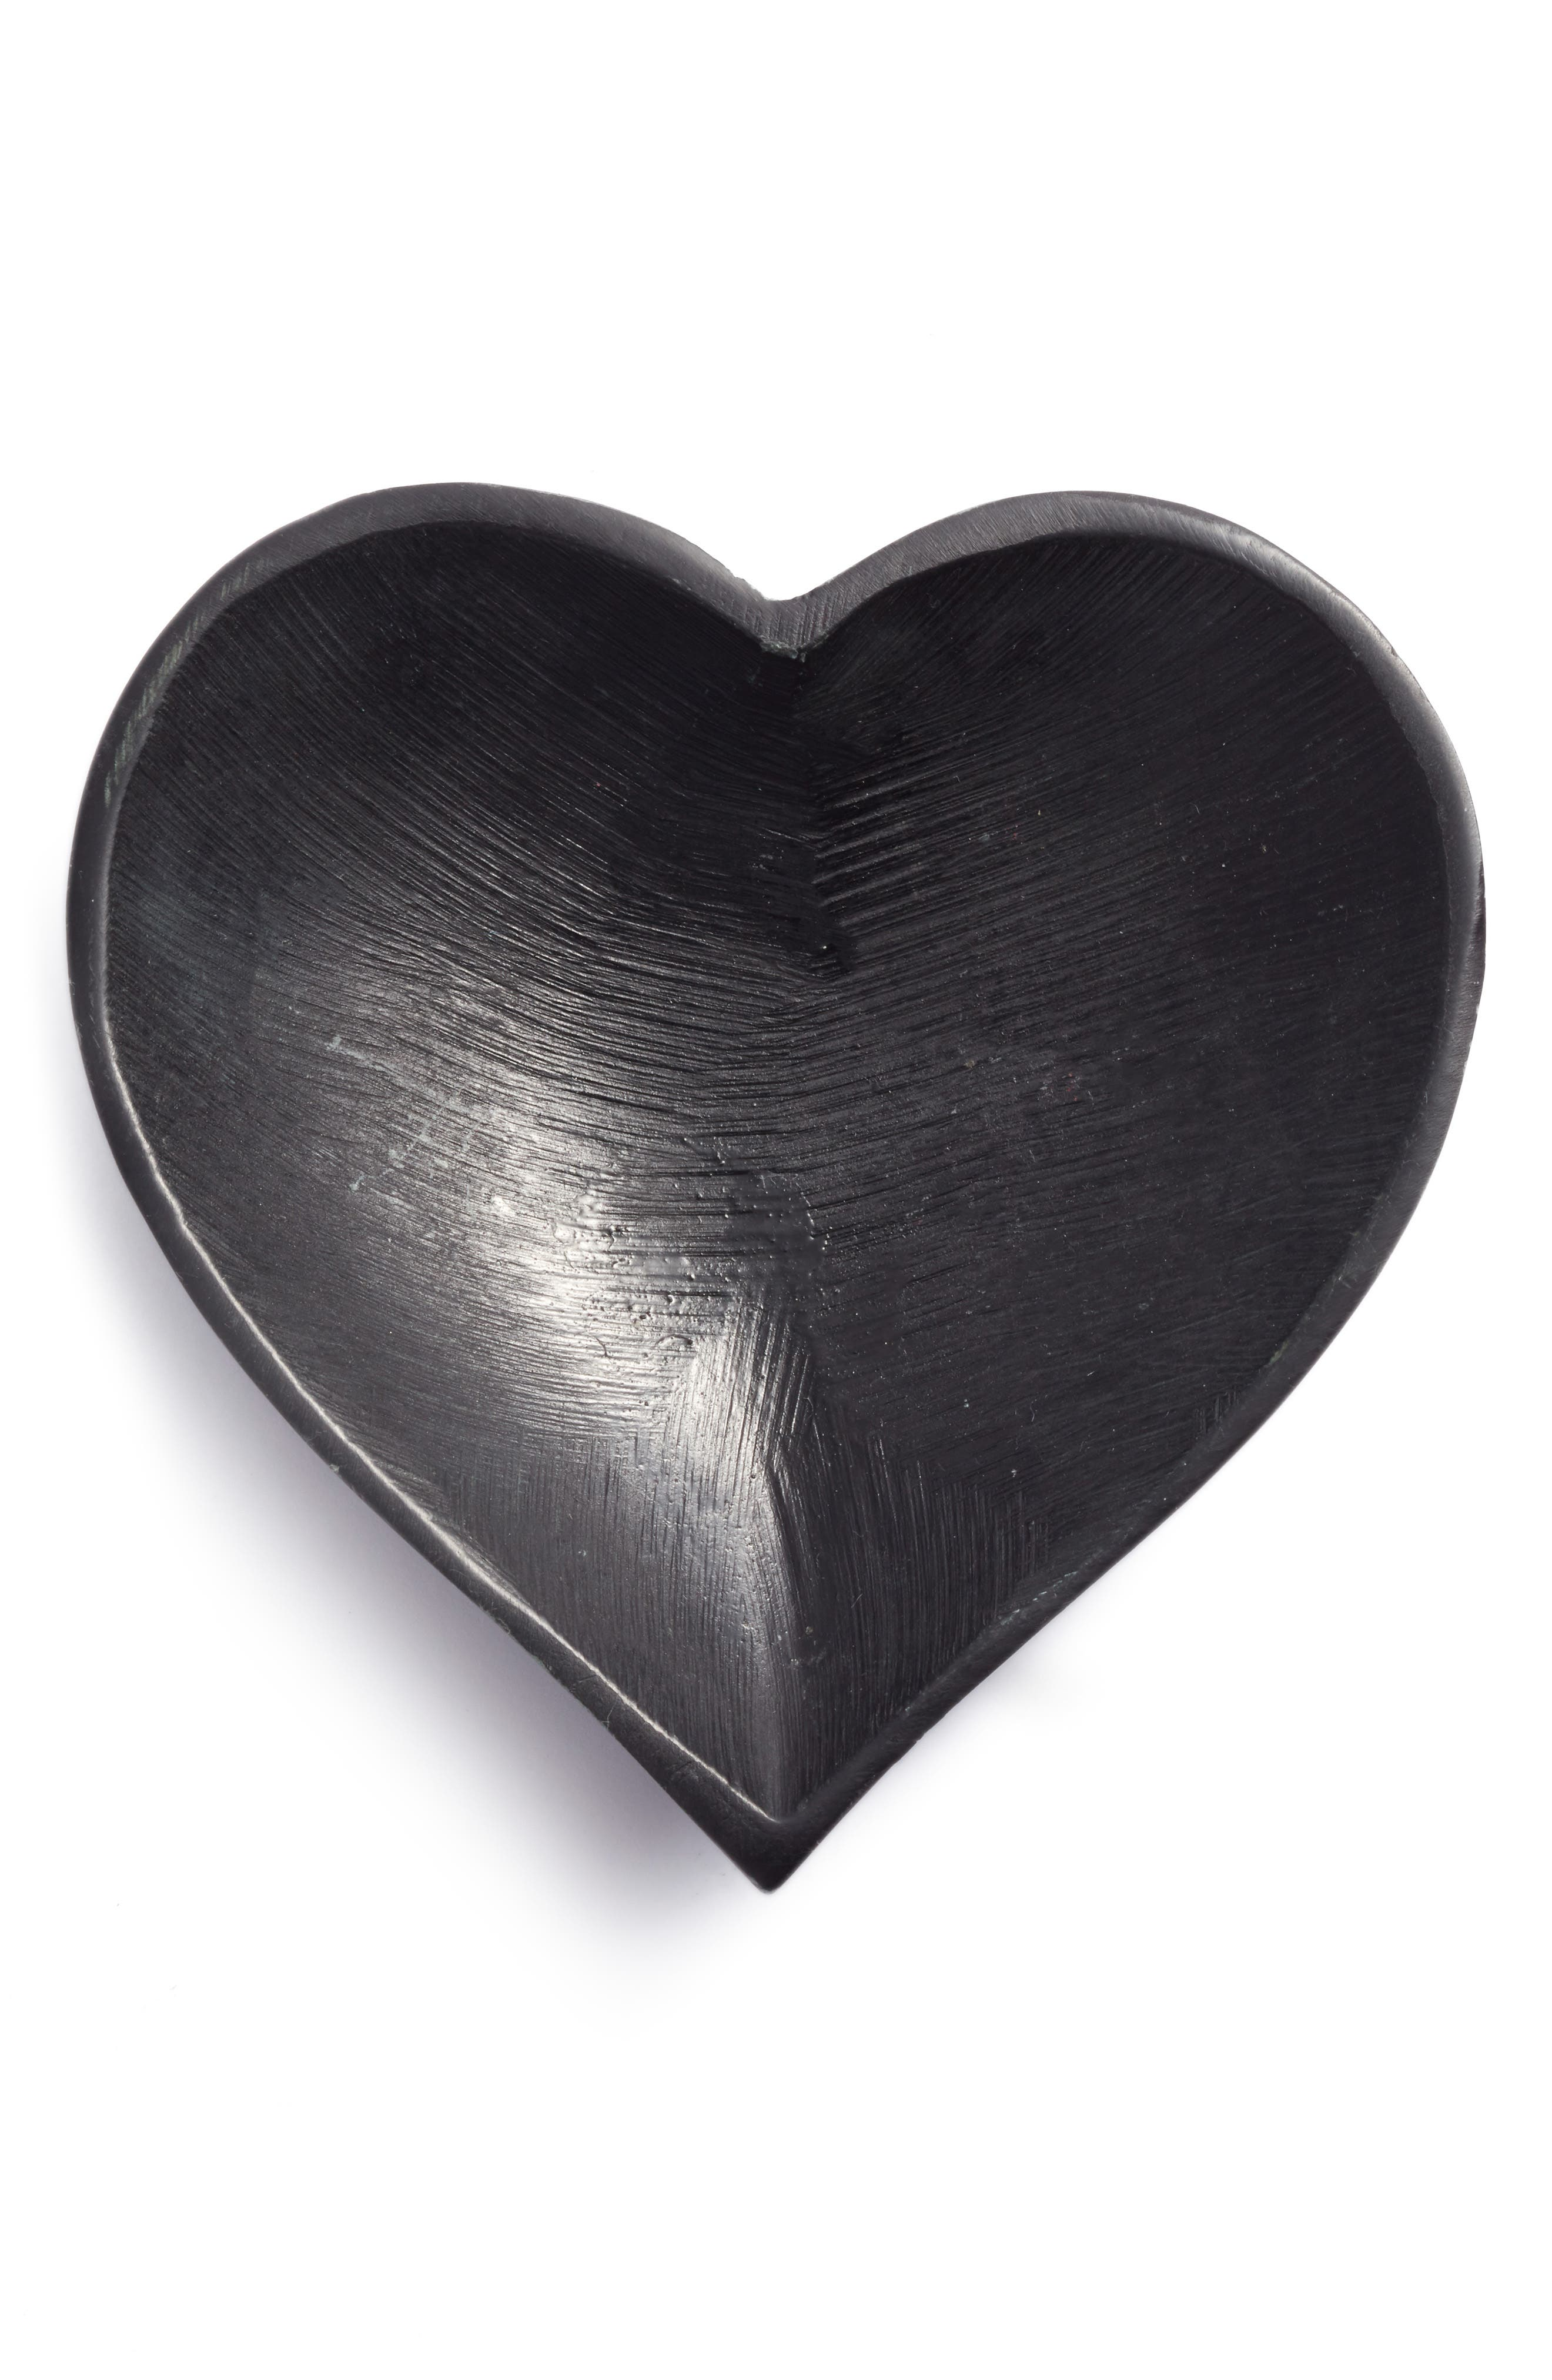 Soapstone Heart Bowl,                         Main,                         color, 001